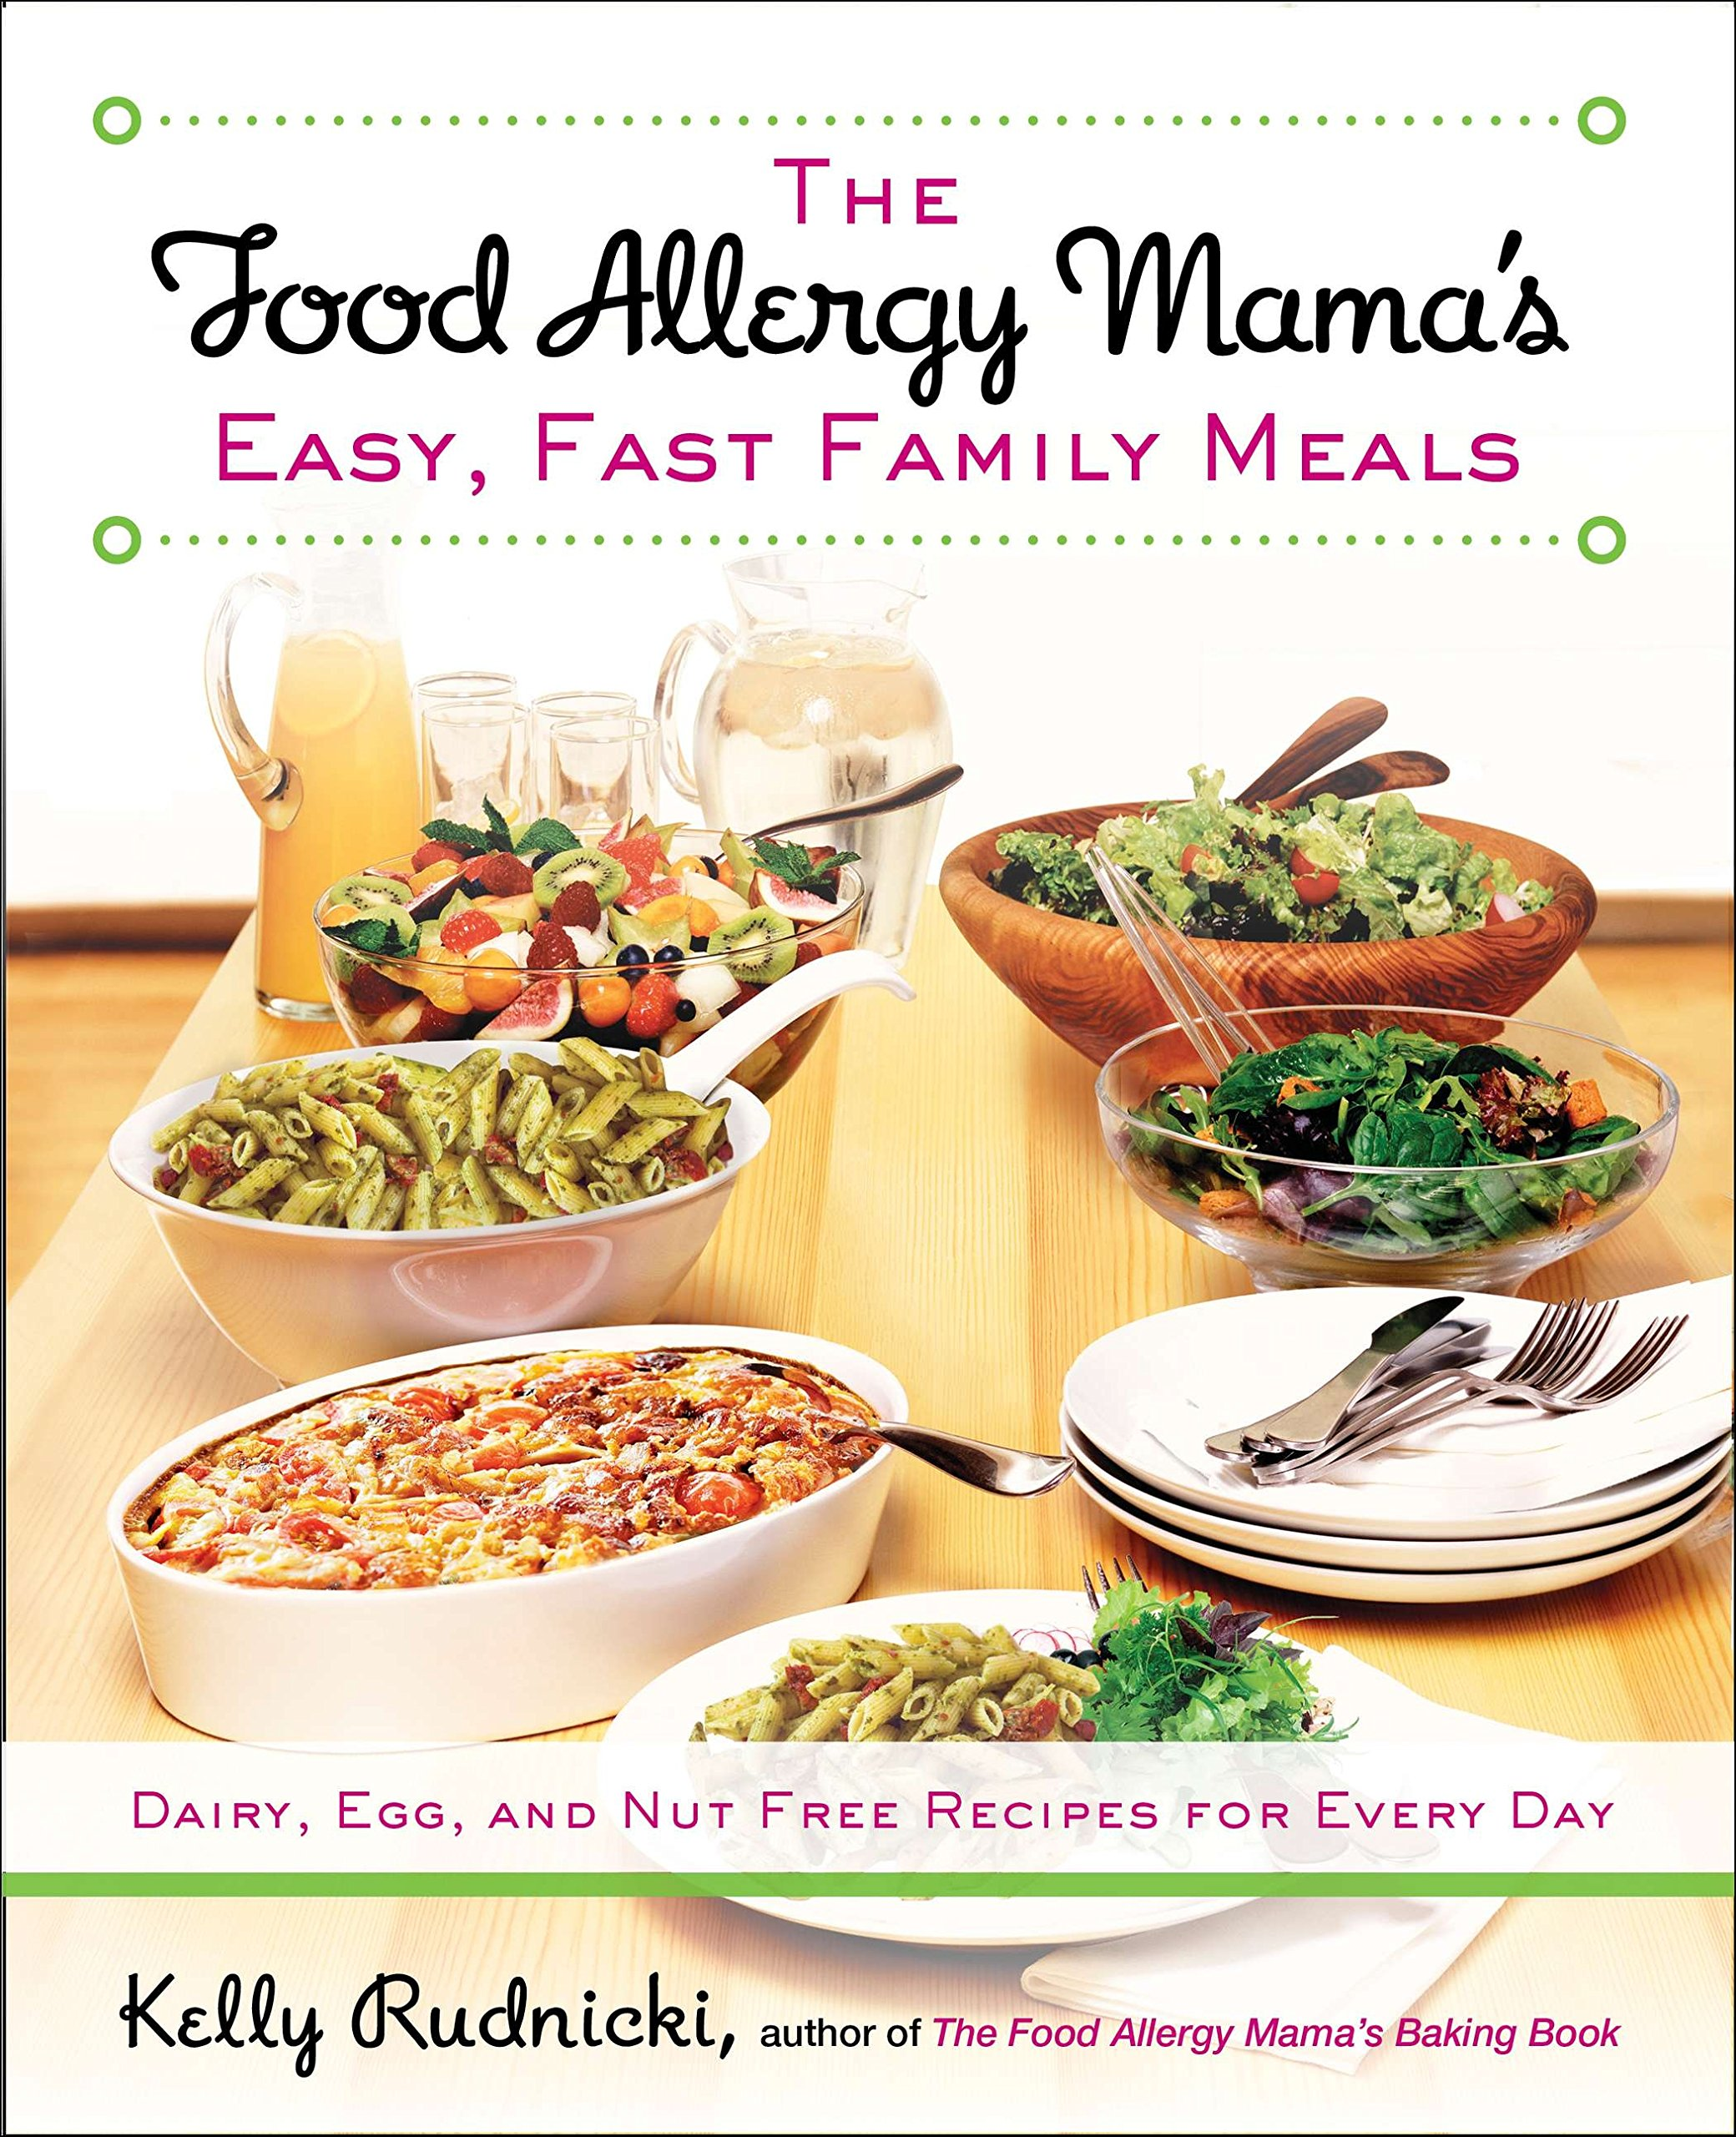 The food allergy mamas easy fast family meals dairy egg and the food allergy mamas easy fast family meals dairy egg and nut free recipes for every day kelly rudnicki 9781583335000 amazon books forumfinder Image collections